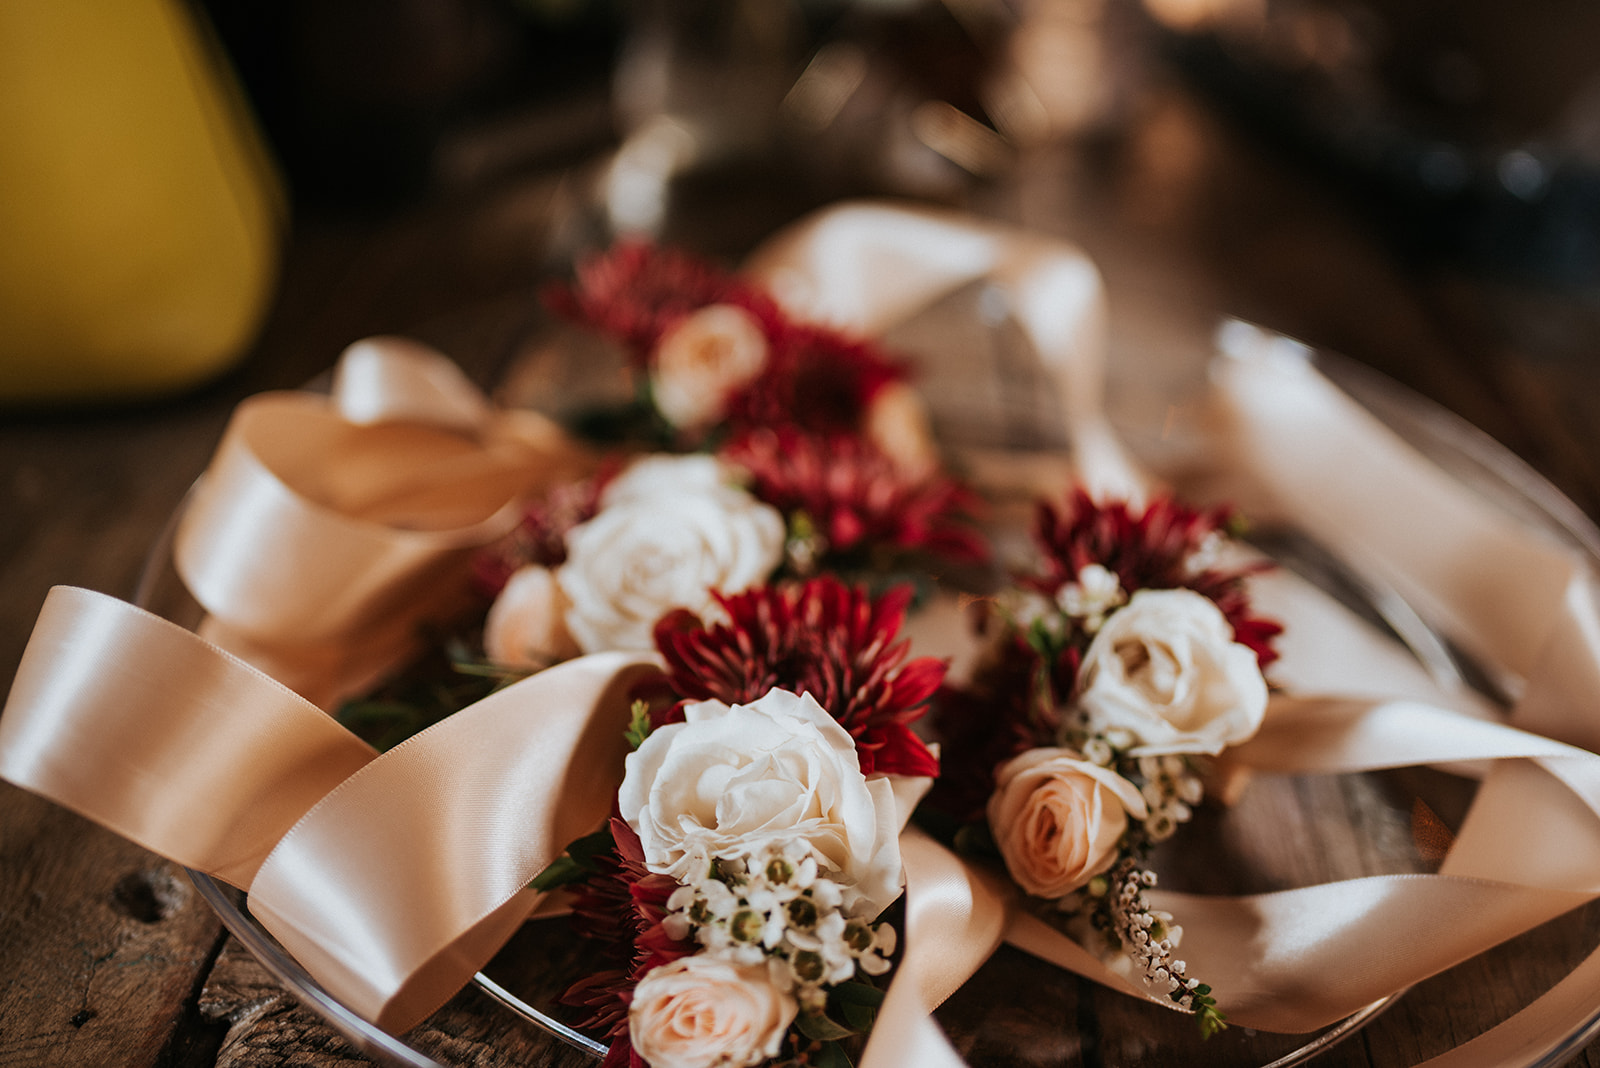 overthevineswisconsinwedding_0409.jpg